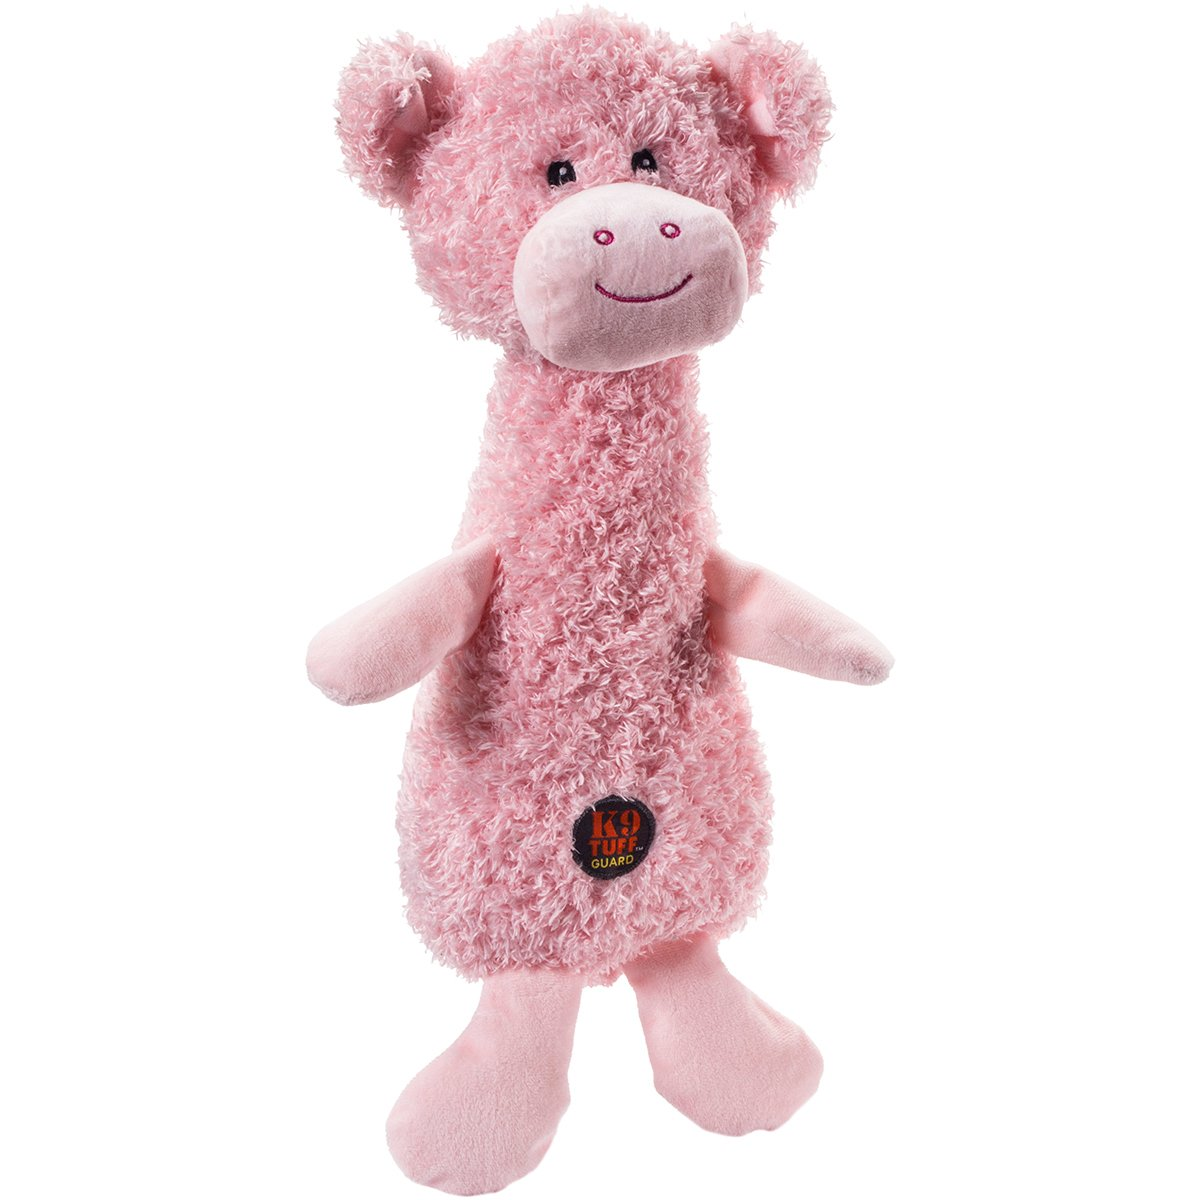 Charming Pet Scruffles Pig Dog Toy, Large